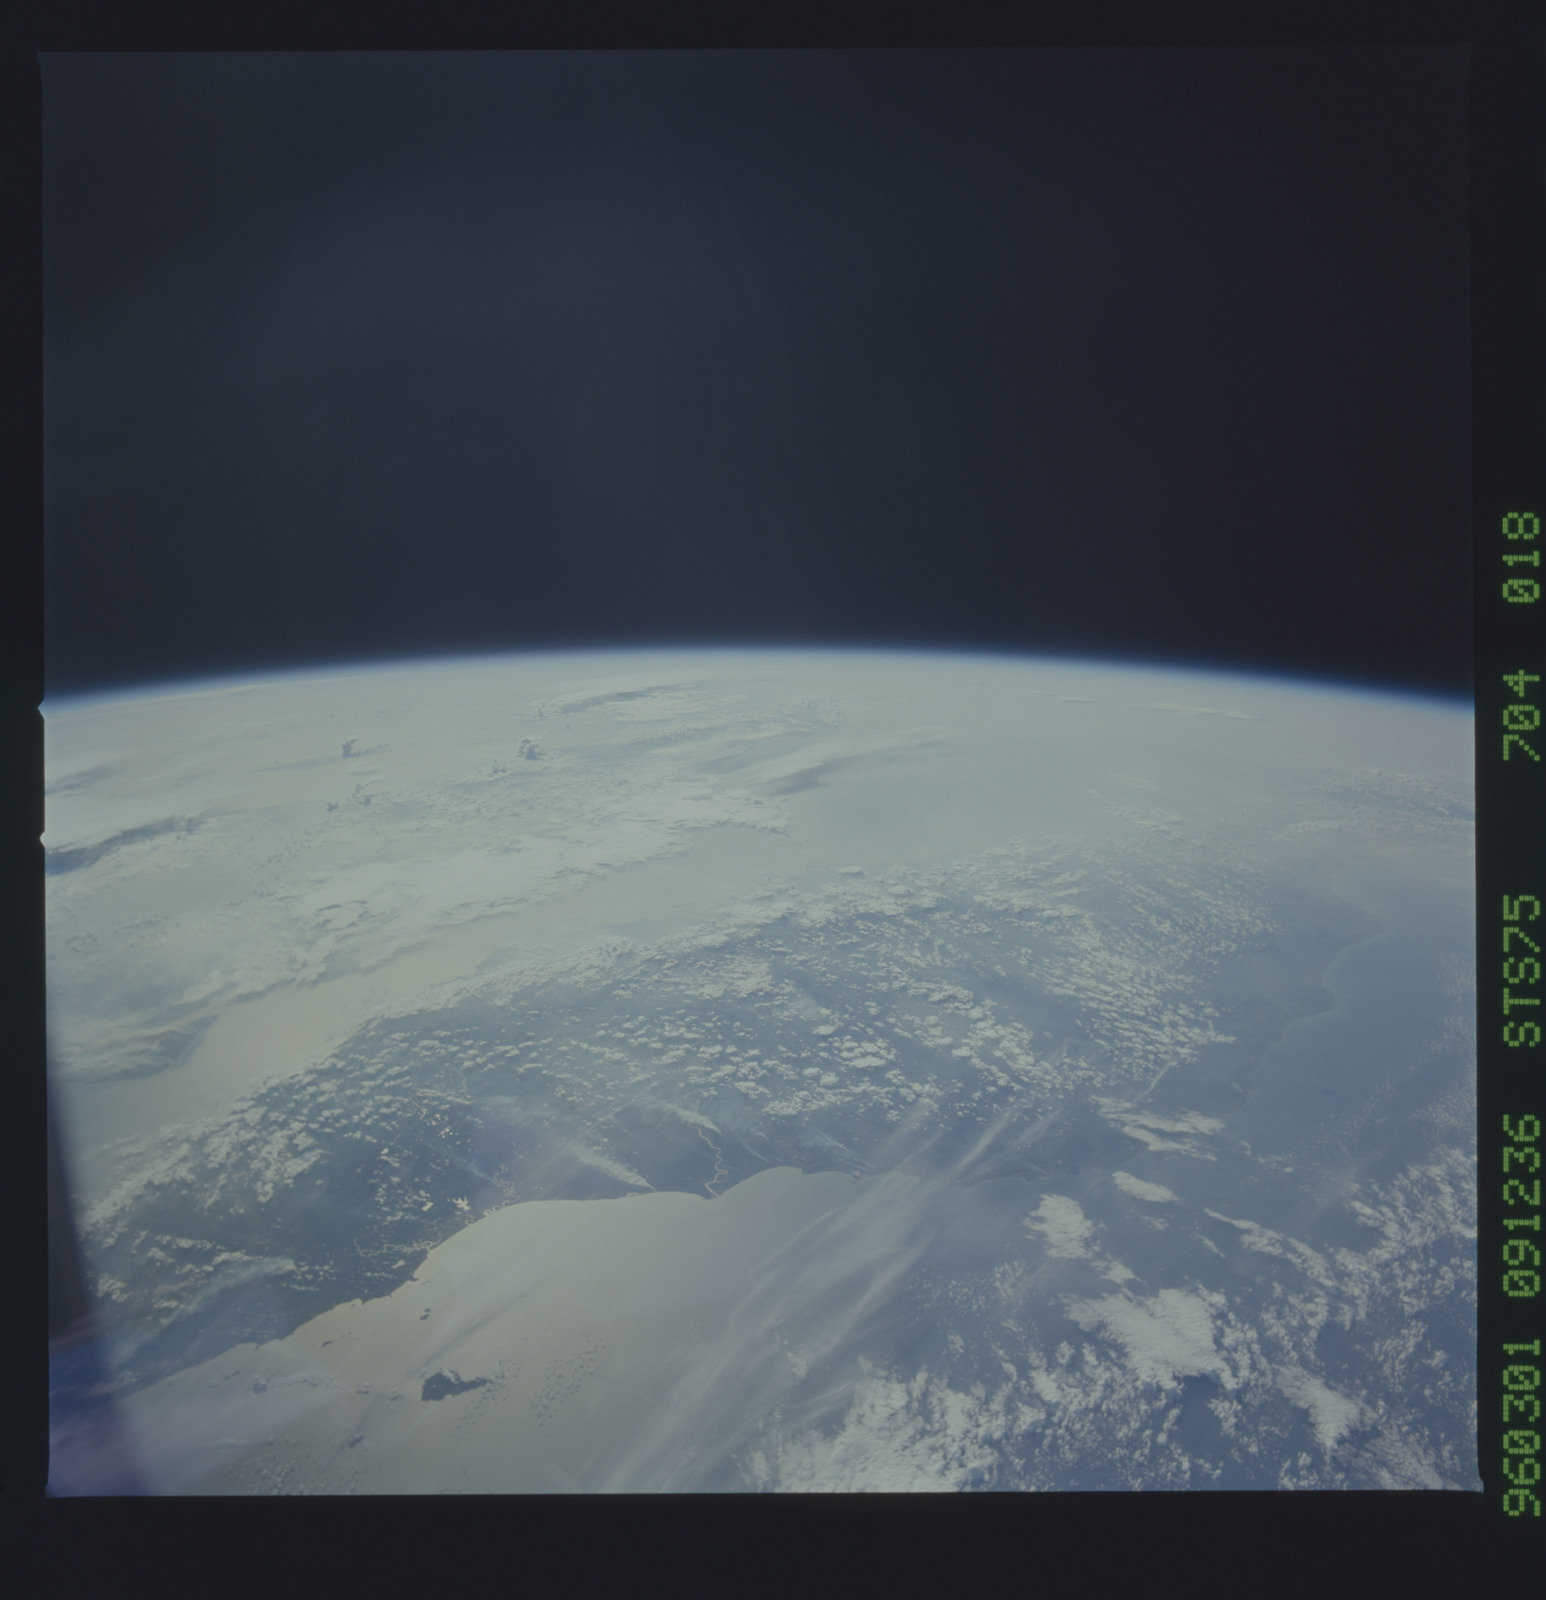 STS075-704-018 - STS-075 - Earth observations taken during STS-75 mission